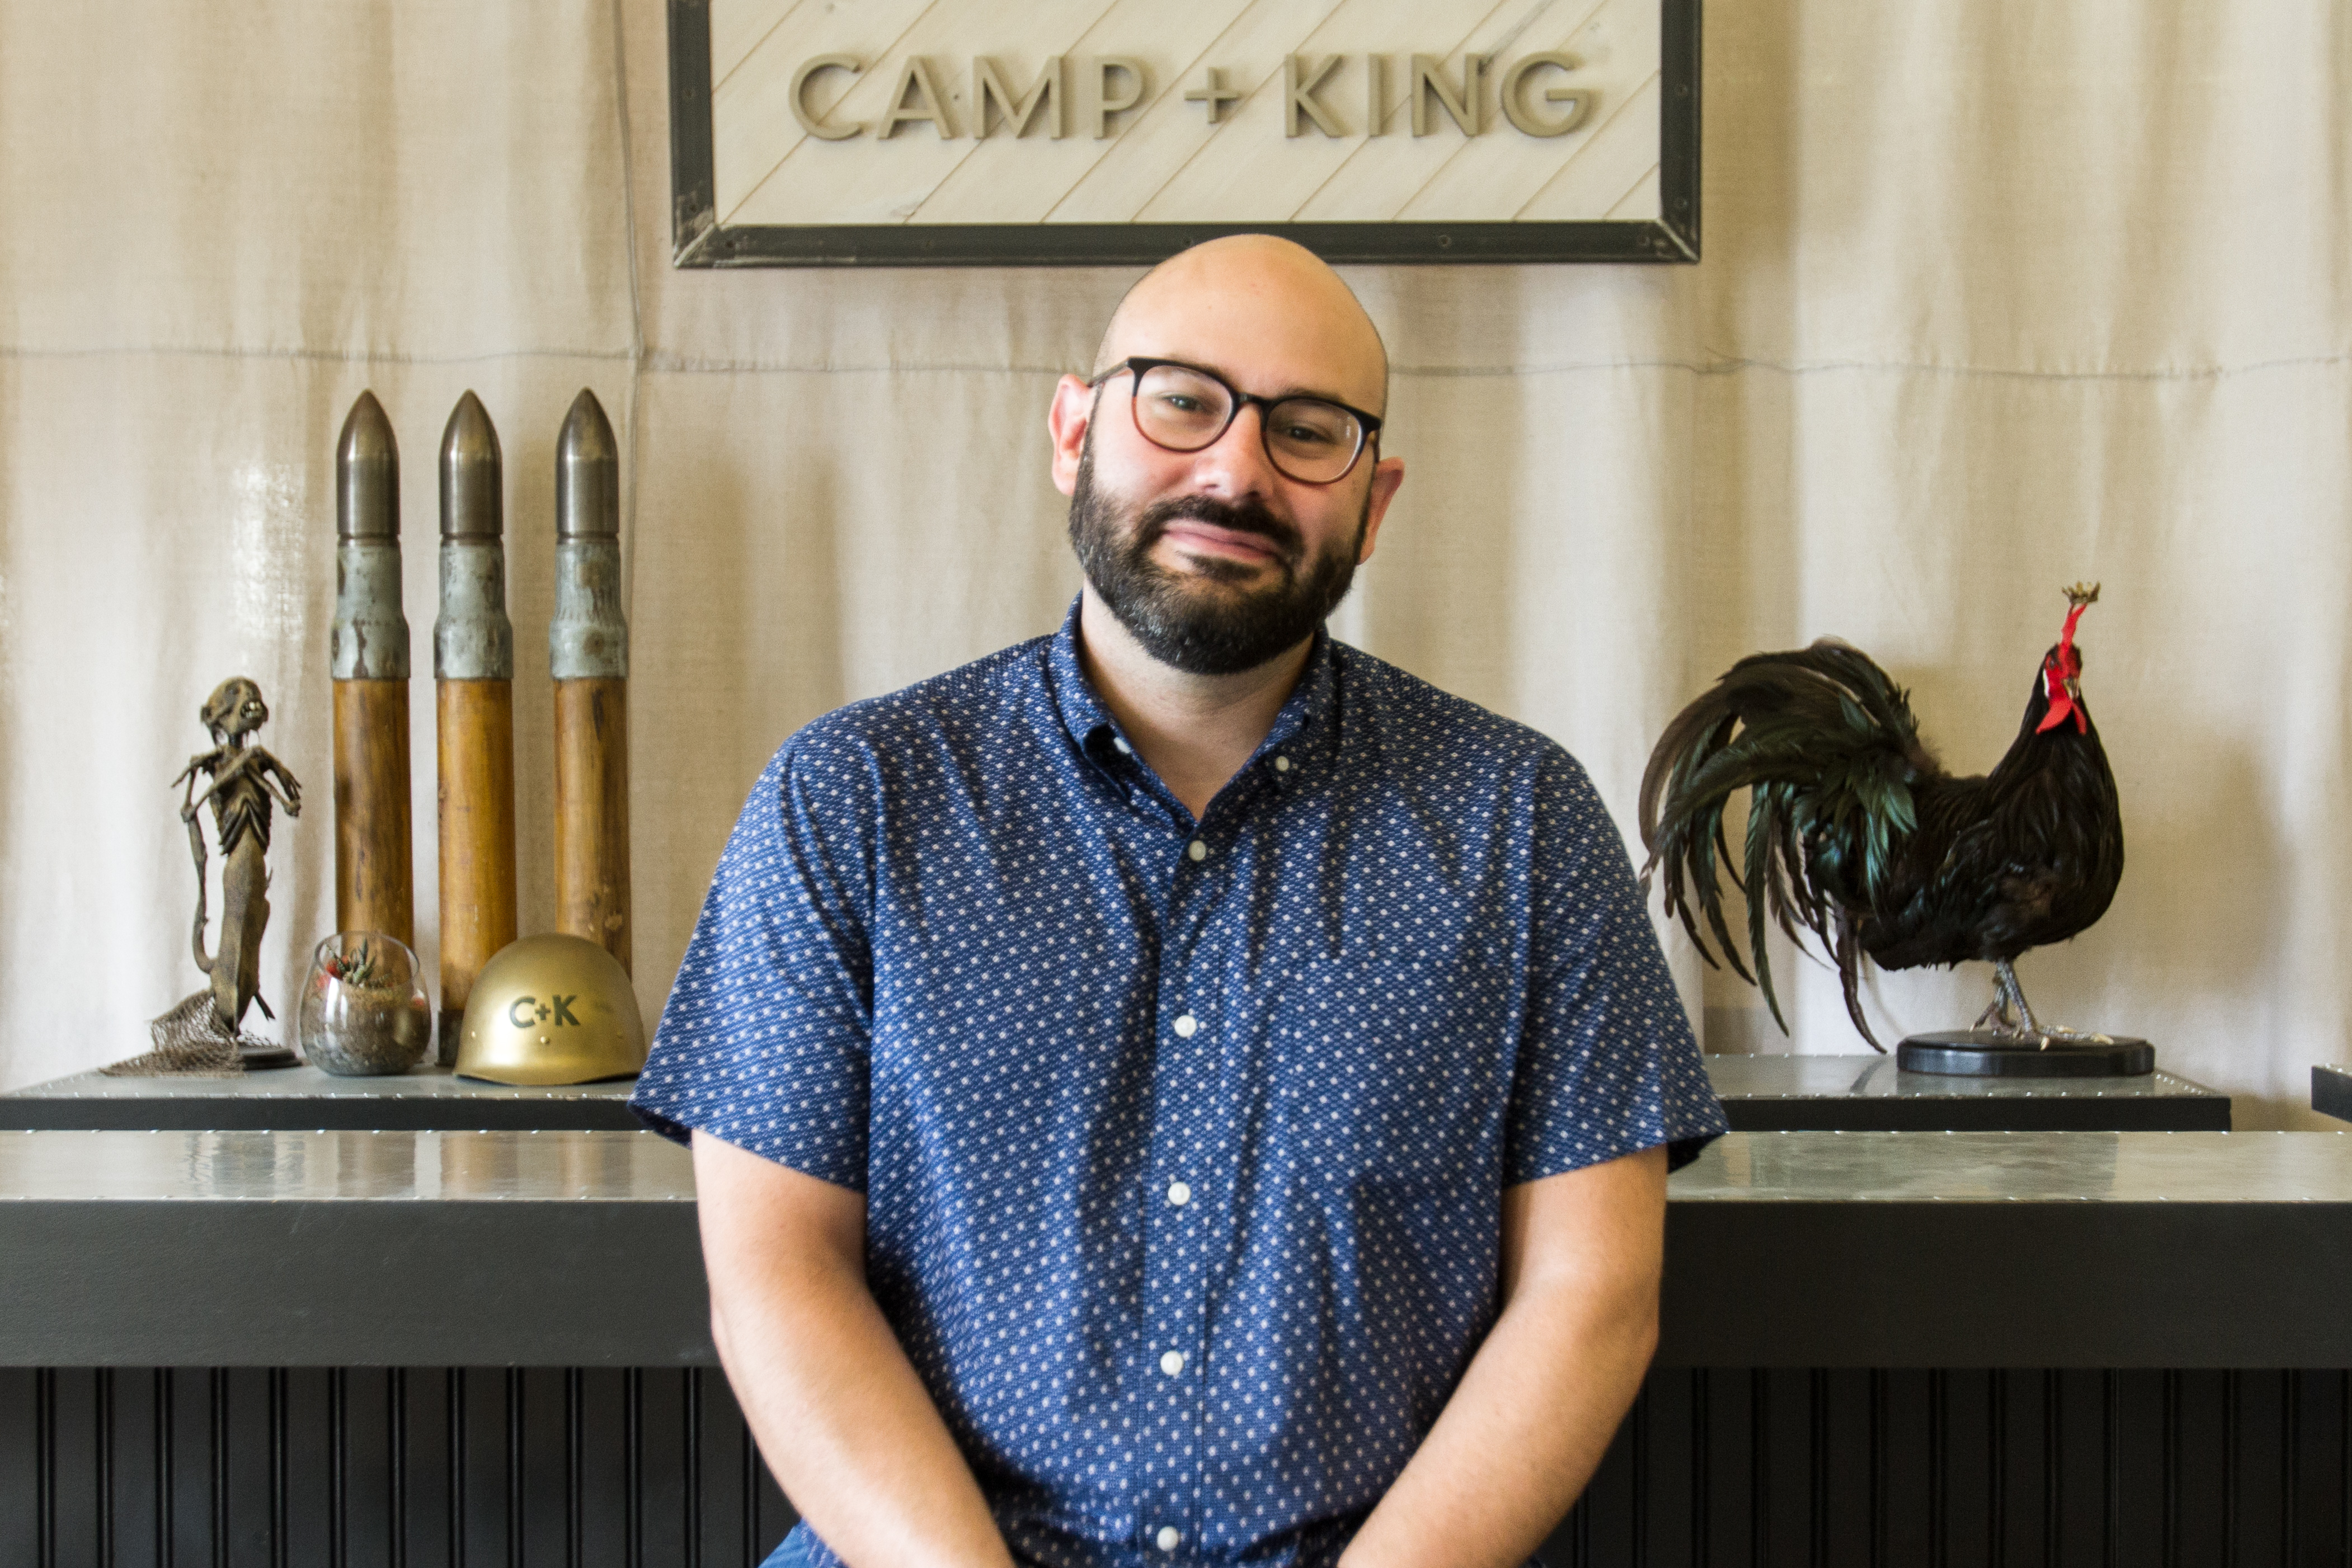 Camp + King Appoints David Morrissey as Strategy Director and Head of Communications Planning